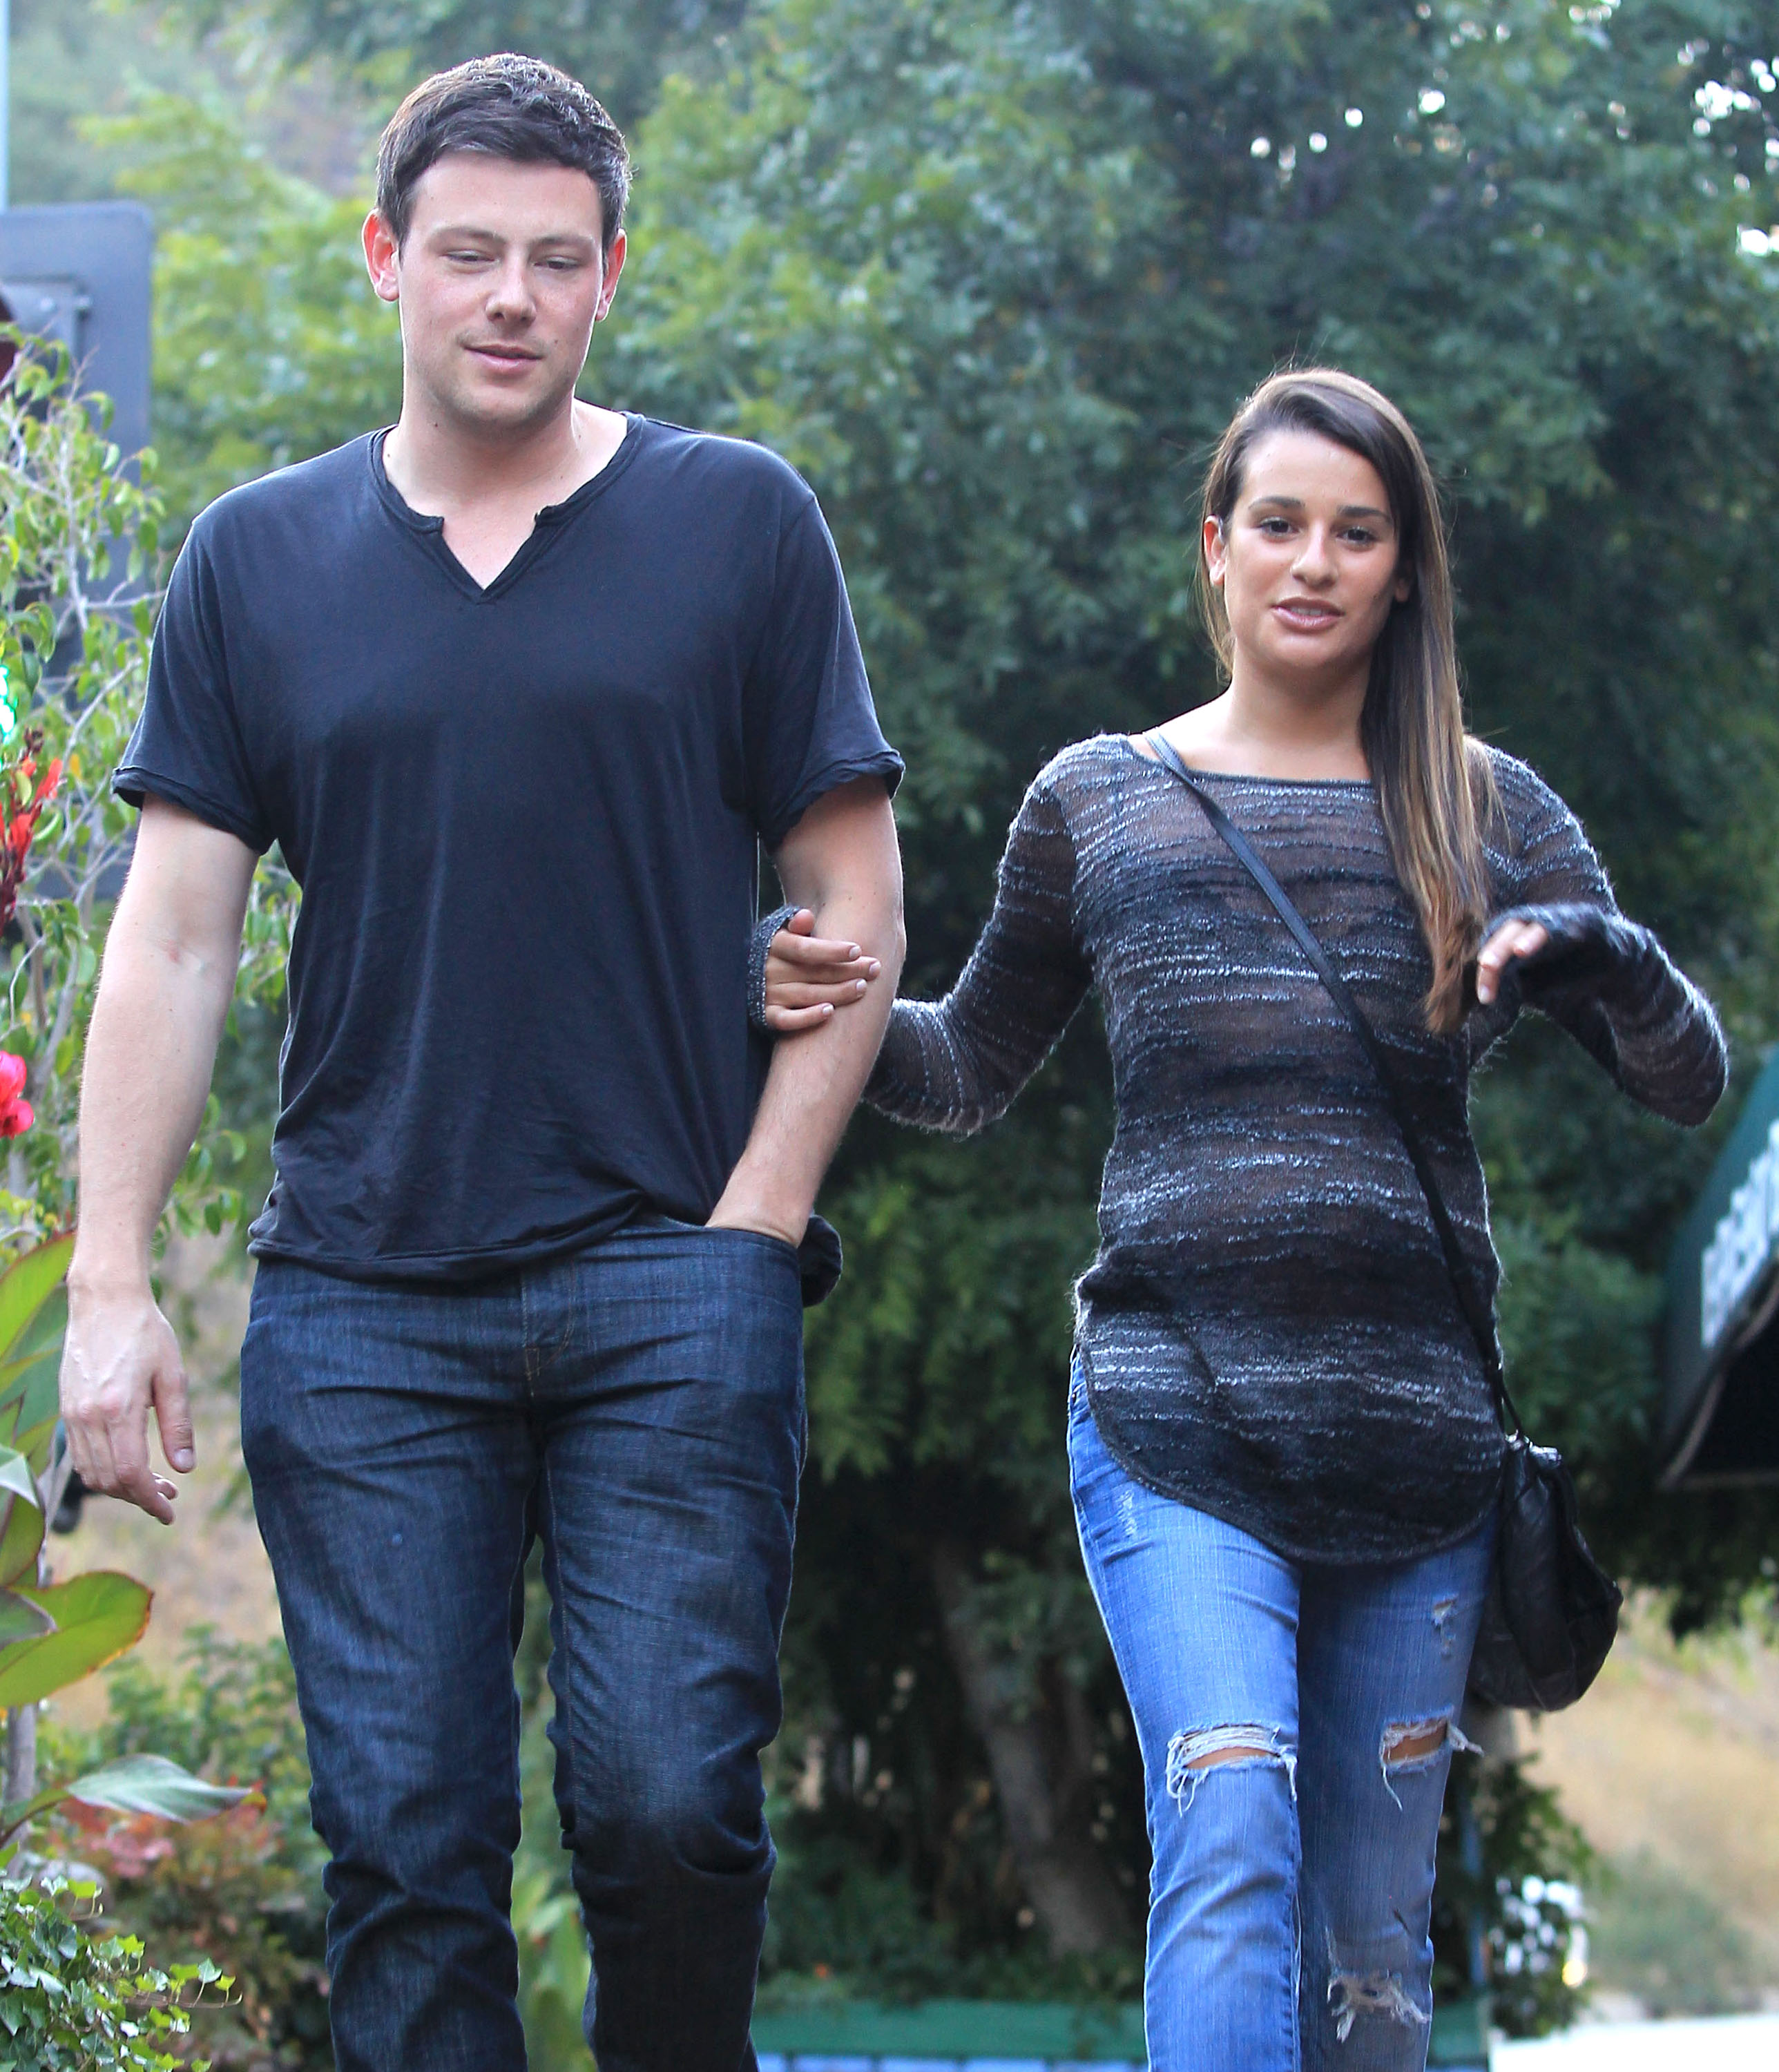 Cory Monteith and Lea Michele dated.